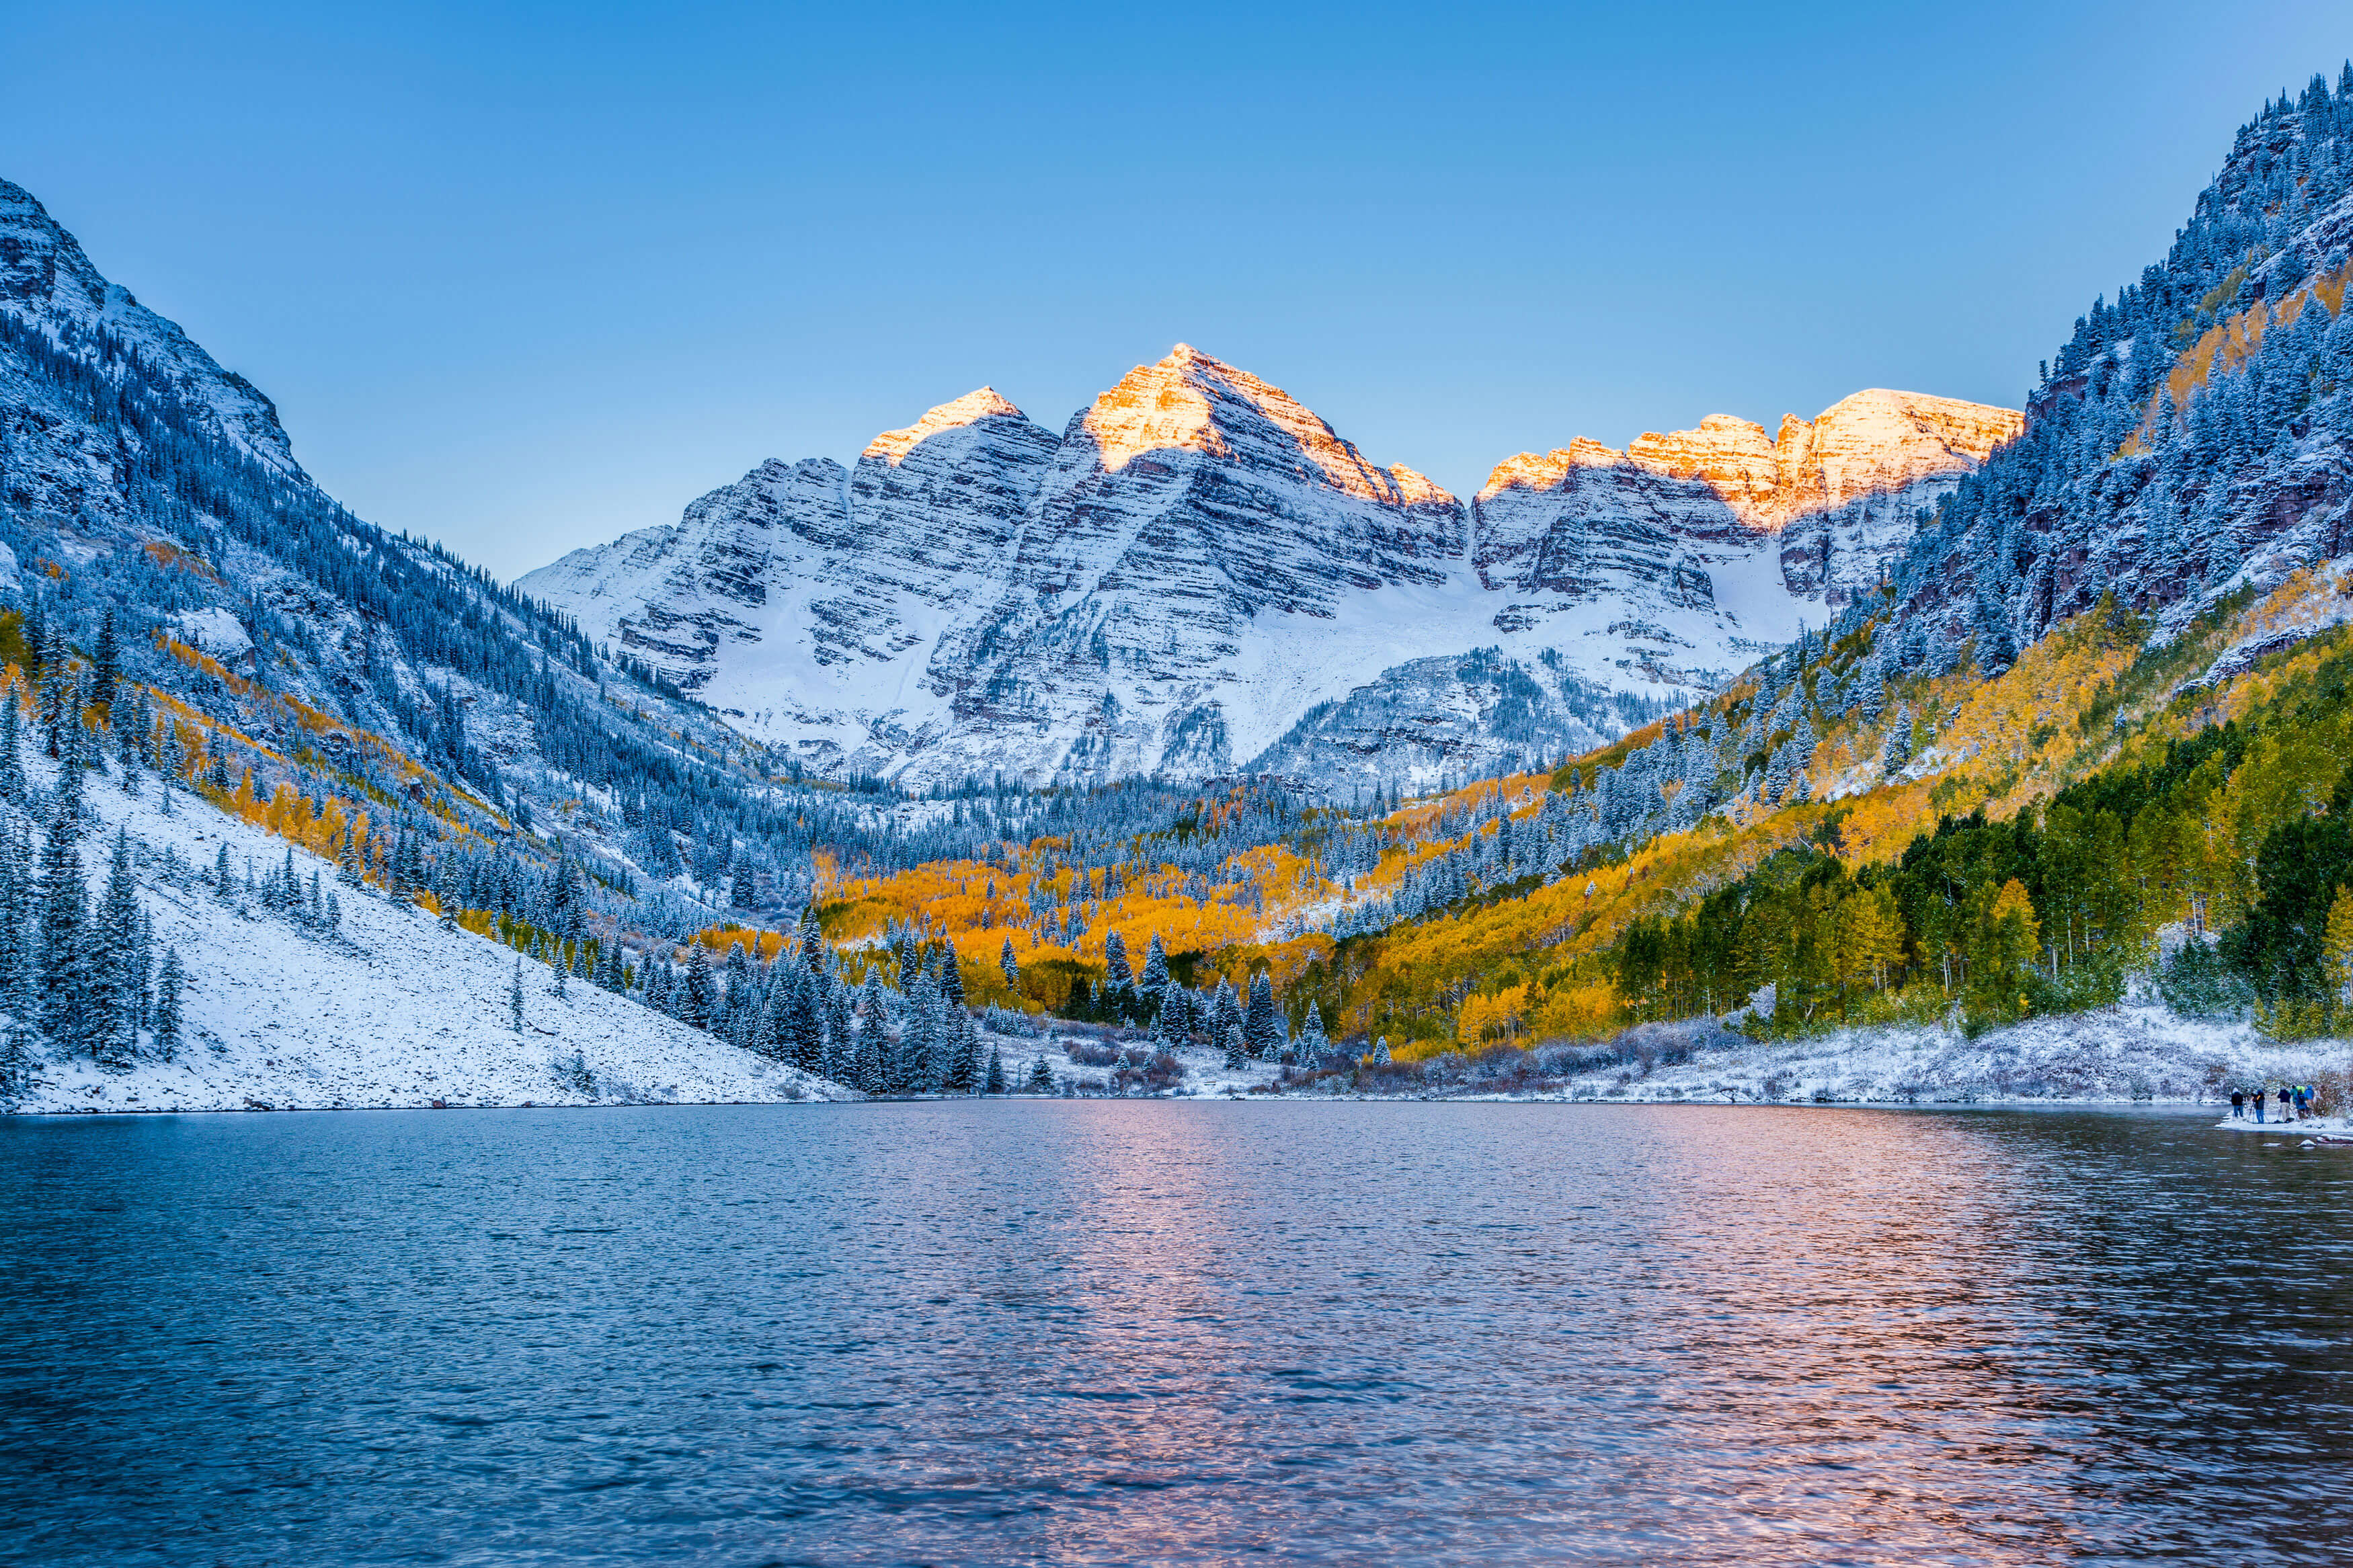 A landscape photo of snowy mountains and the reflection of a sunset in a lake